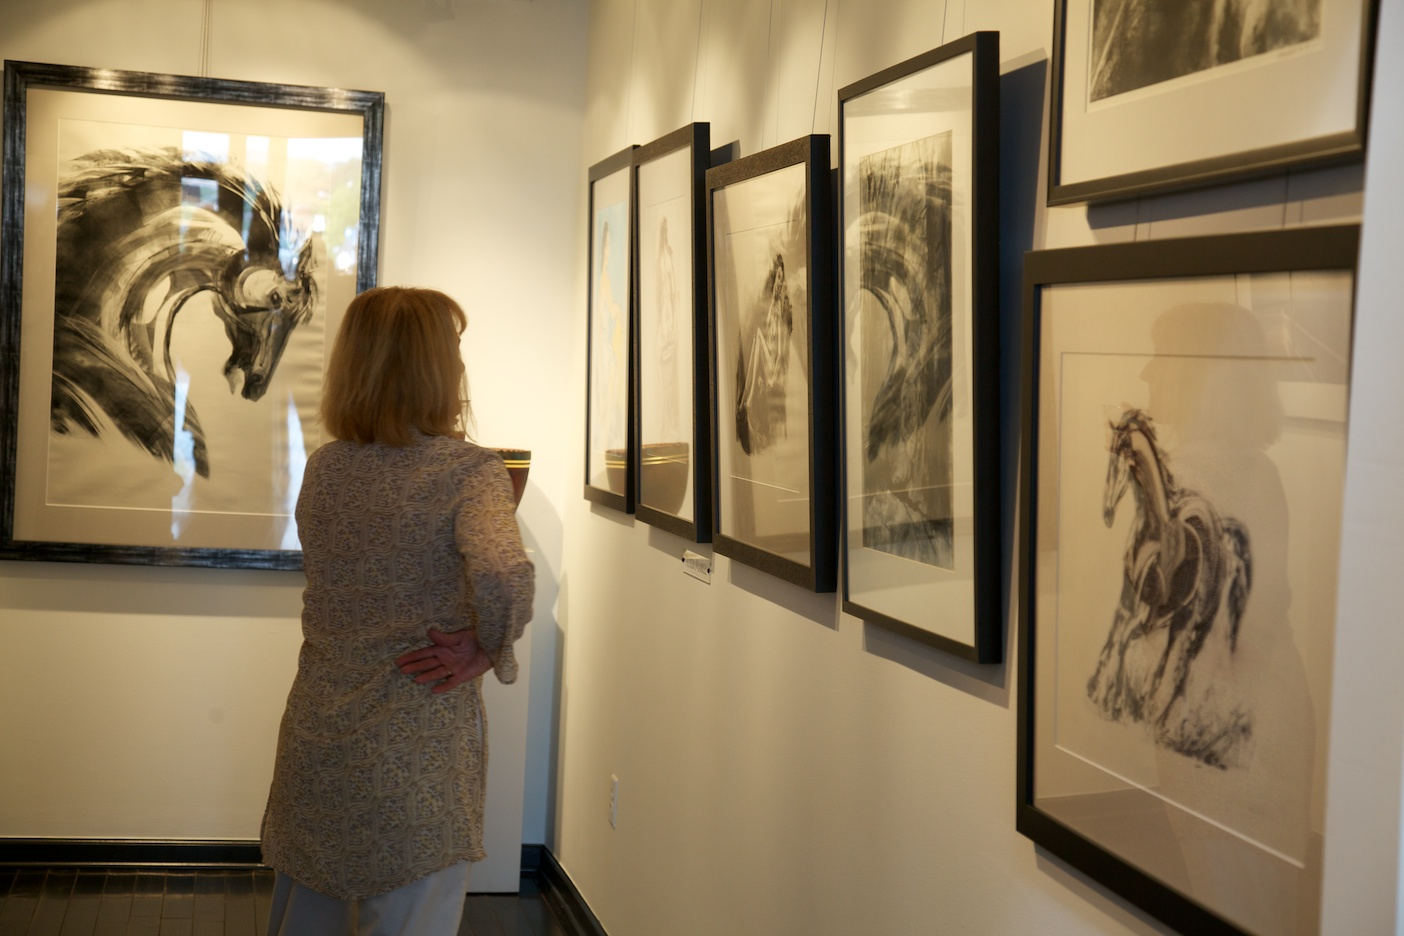 """Victoria Schomer of ASID and Green Built Environments admires some of Alyson Markell's monoprints    Back wall: """"Equus""""  Bottom right: """"Running Horse"""""""